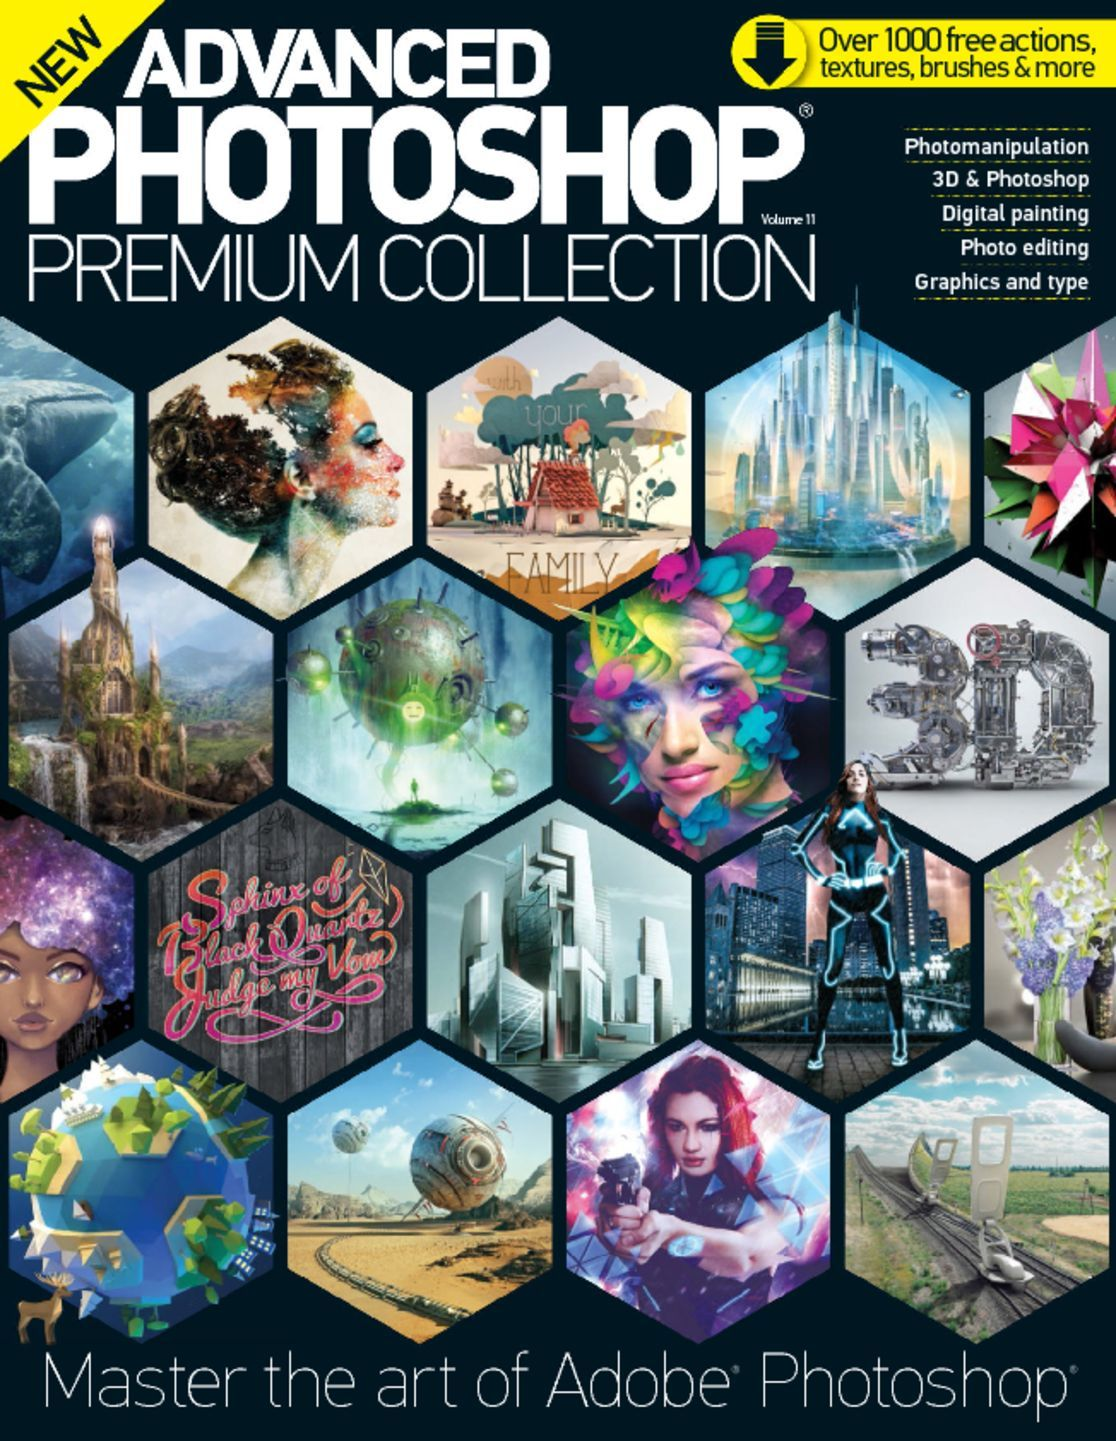 Advanced Photoshop The Premium Collection Digital